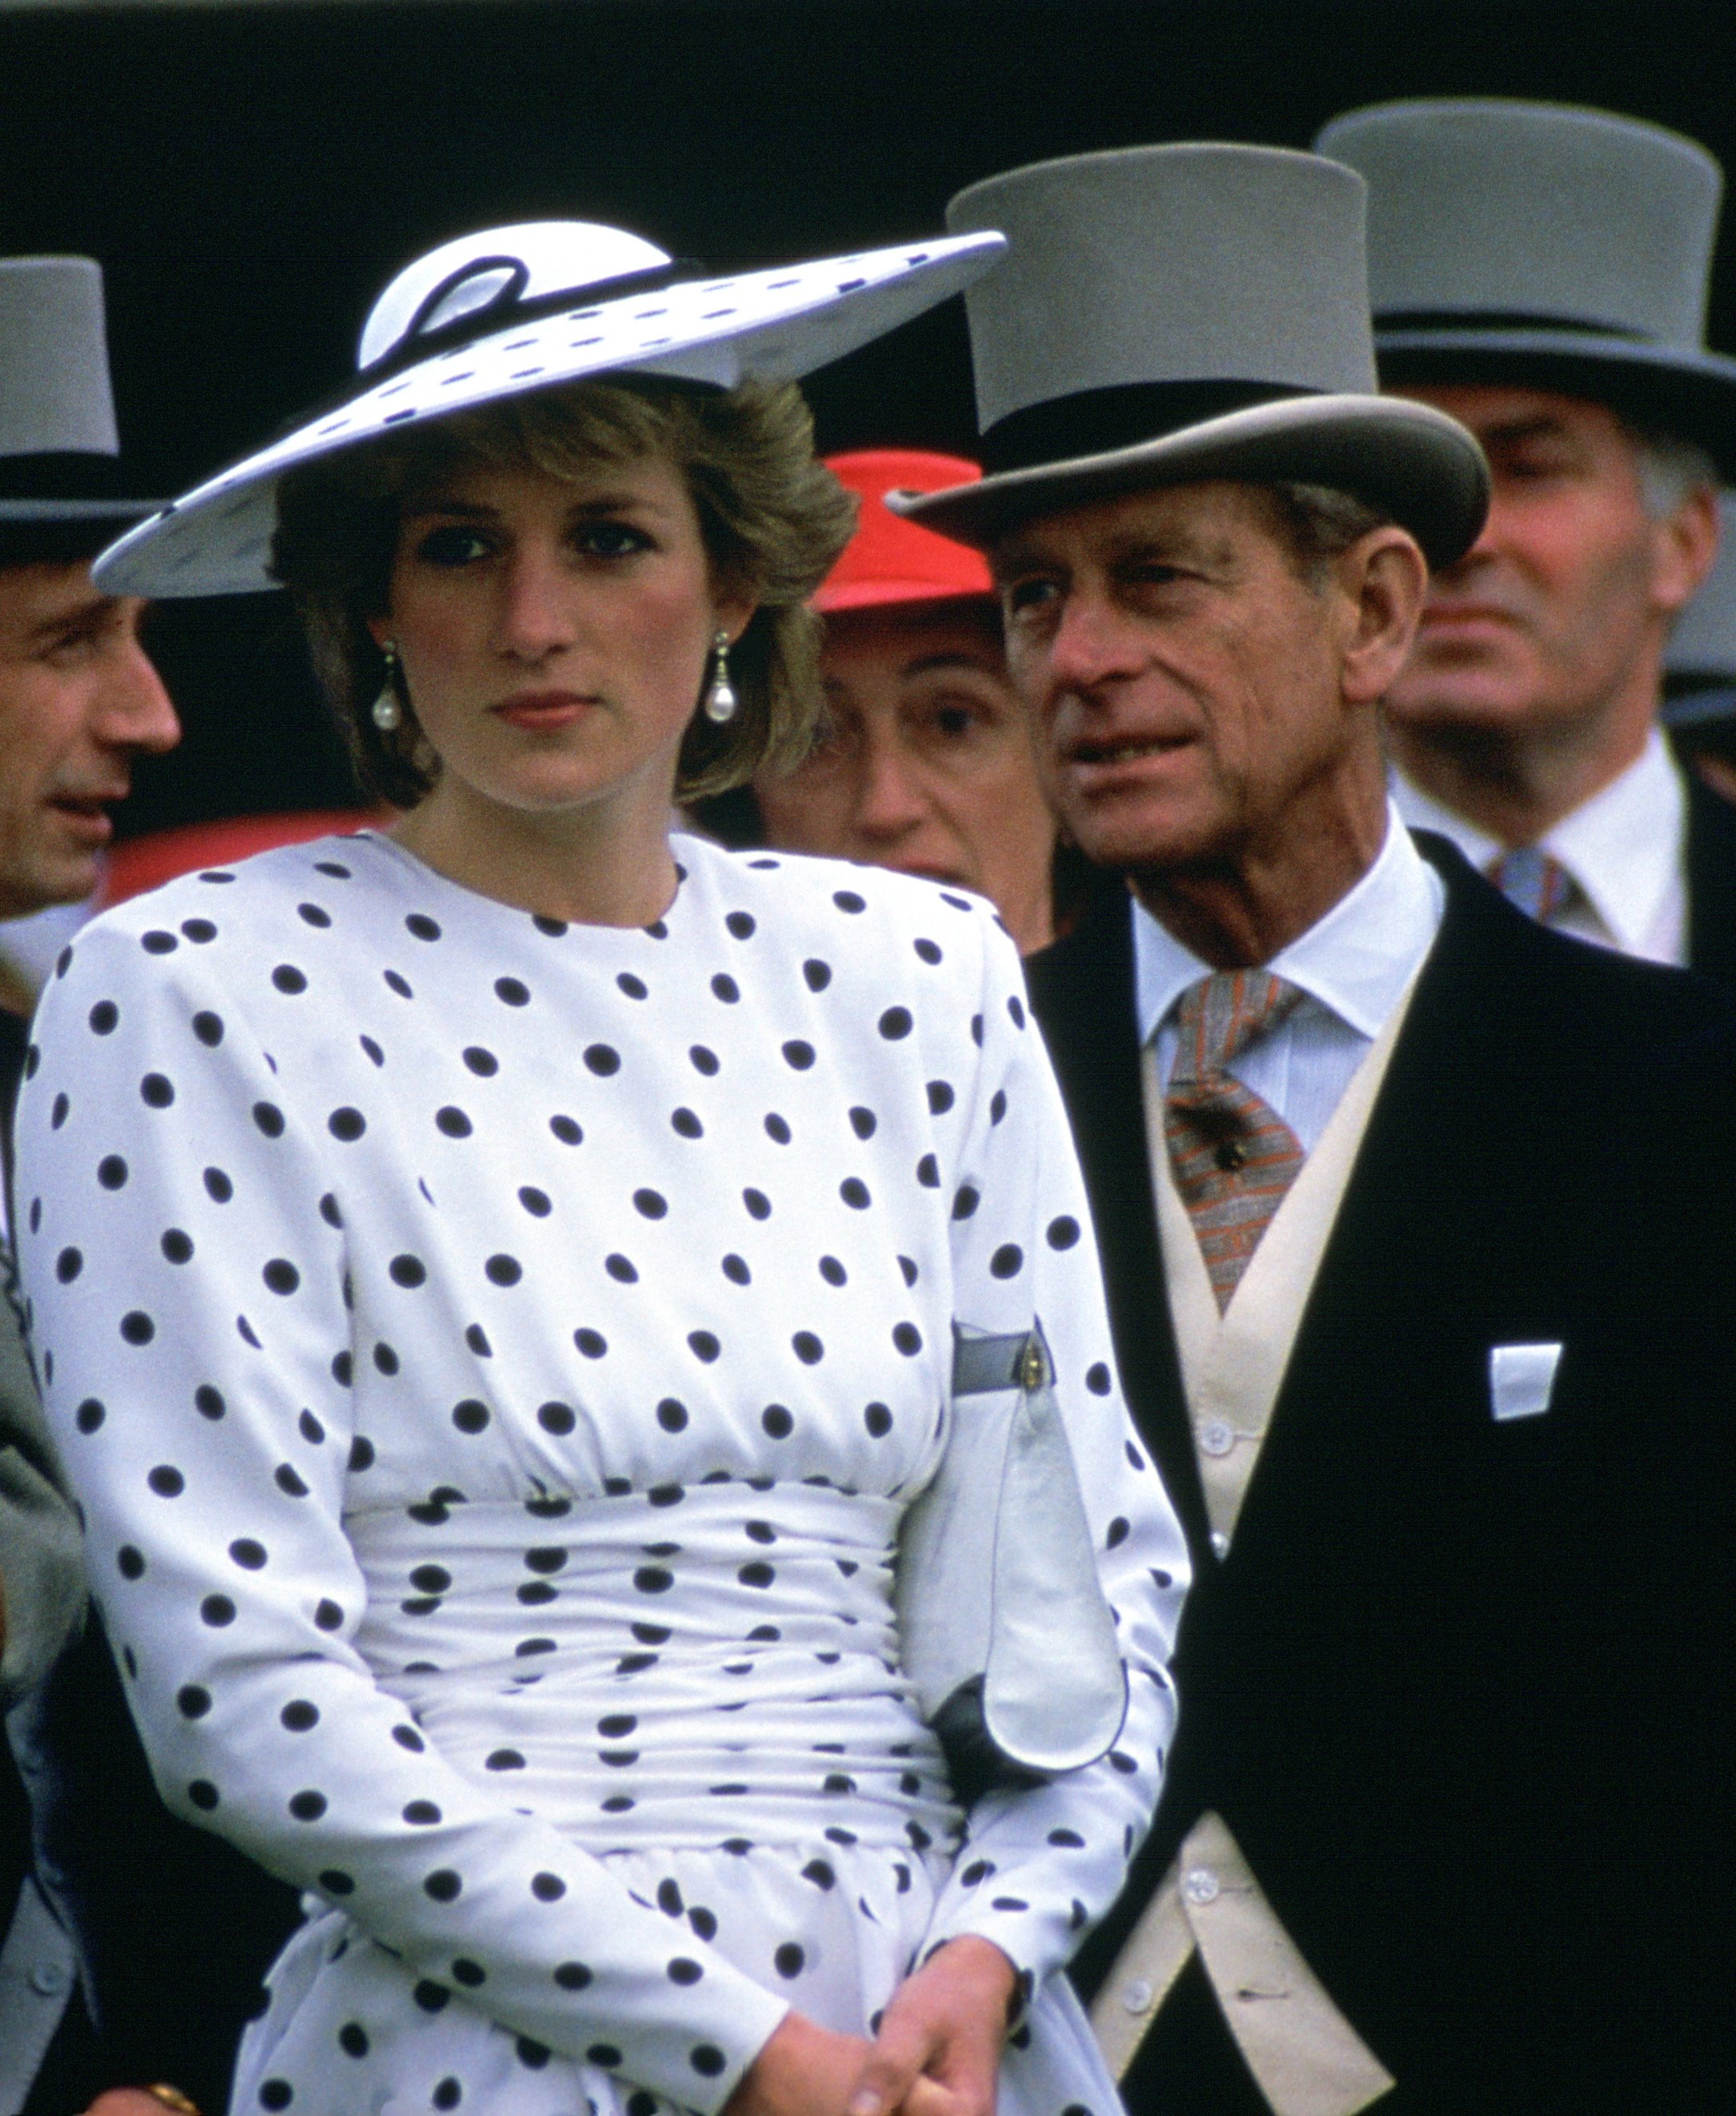 Pictured - Diana, Princess of Wales with Prince Philip on Derby Day | Photo: Getty Images